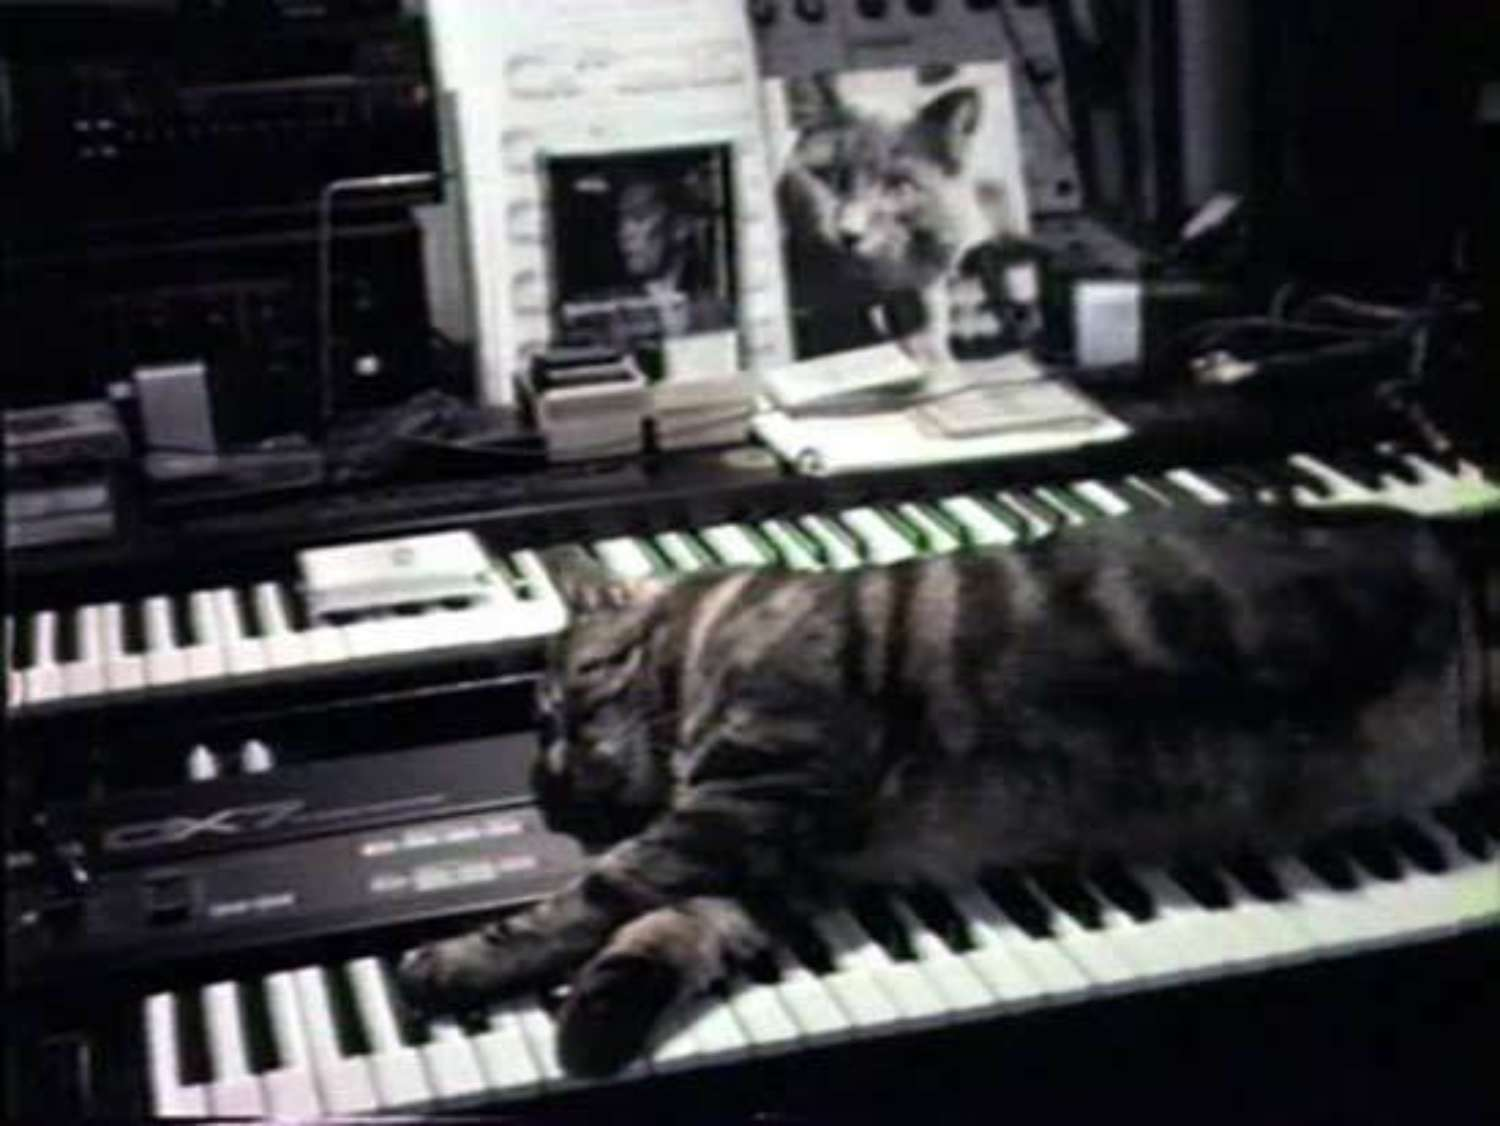 Opening on January 31: Amanda Ross-Ho, HURTS WORST + Chris Marker, Cat Listening To Music + Stefan Tcherepnin, The Mad Masters